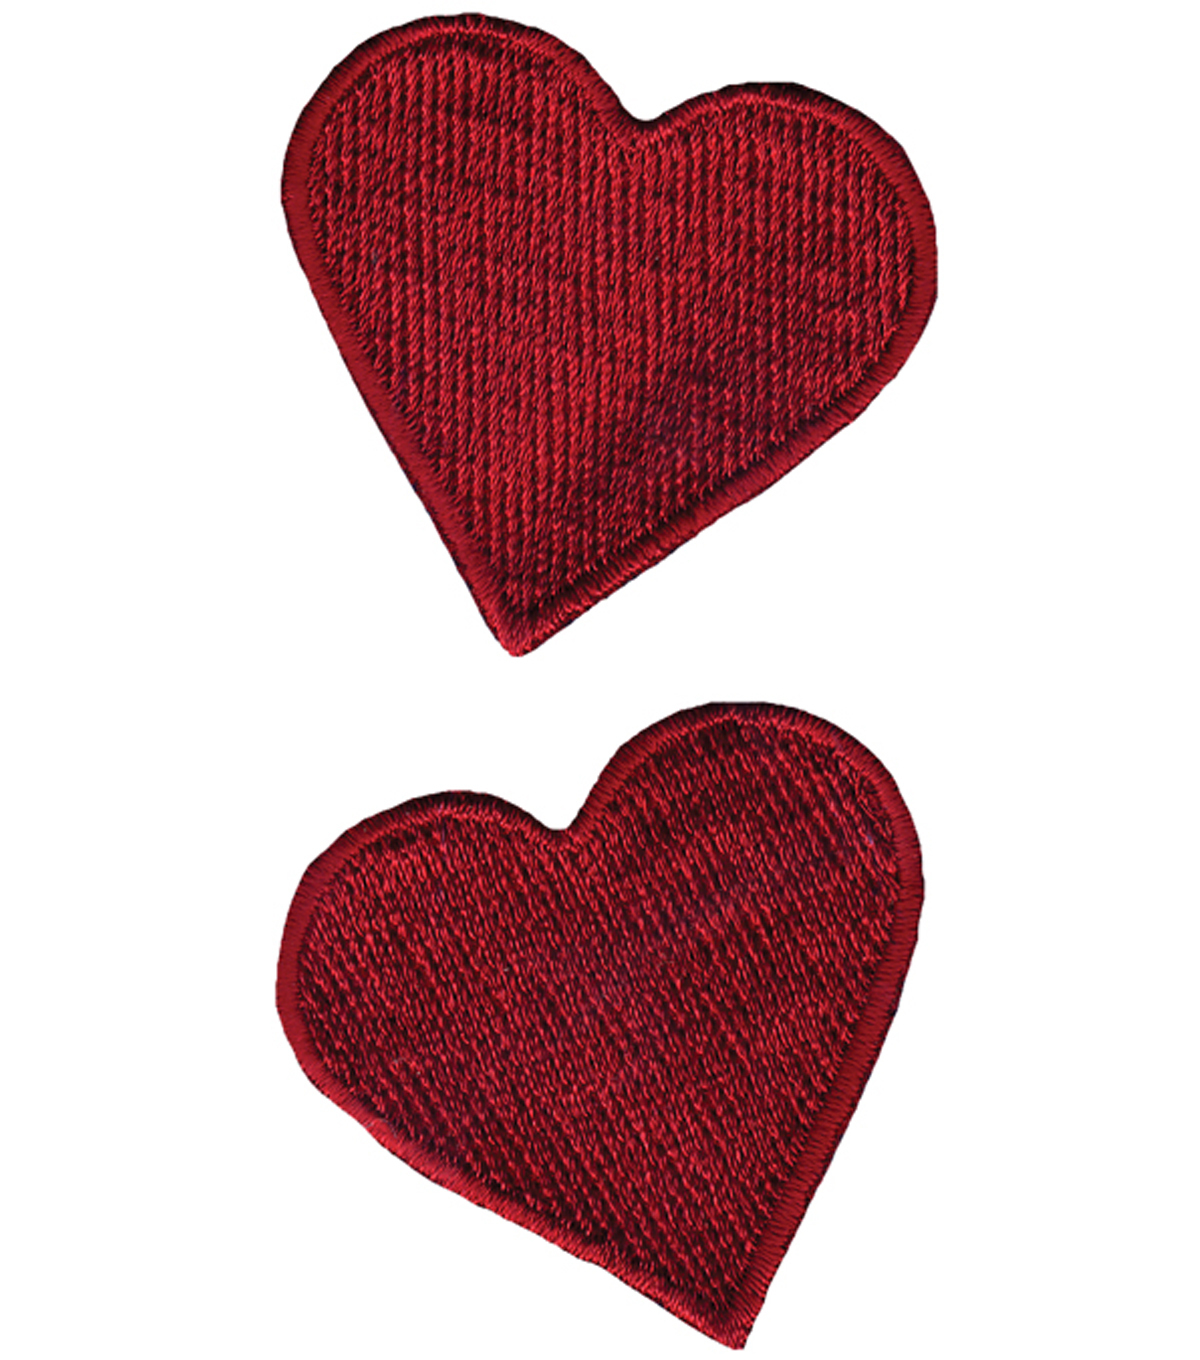 "Wrights Iron-On Appliques-Red Hearts 1-3/4""X1-3/4"" 2/Pkg"